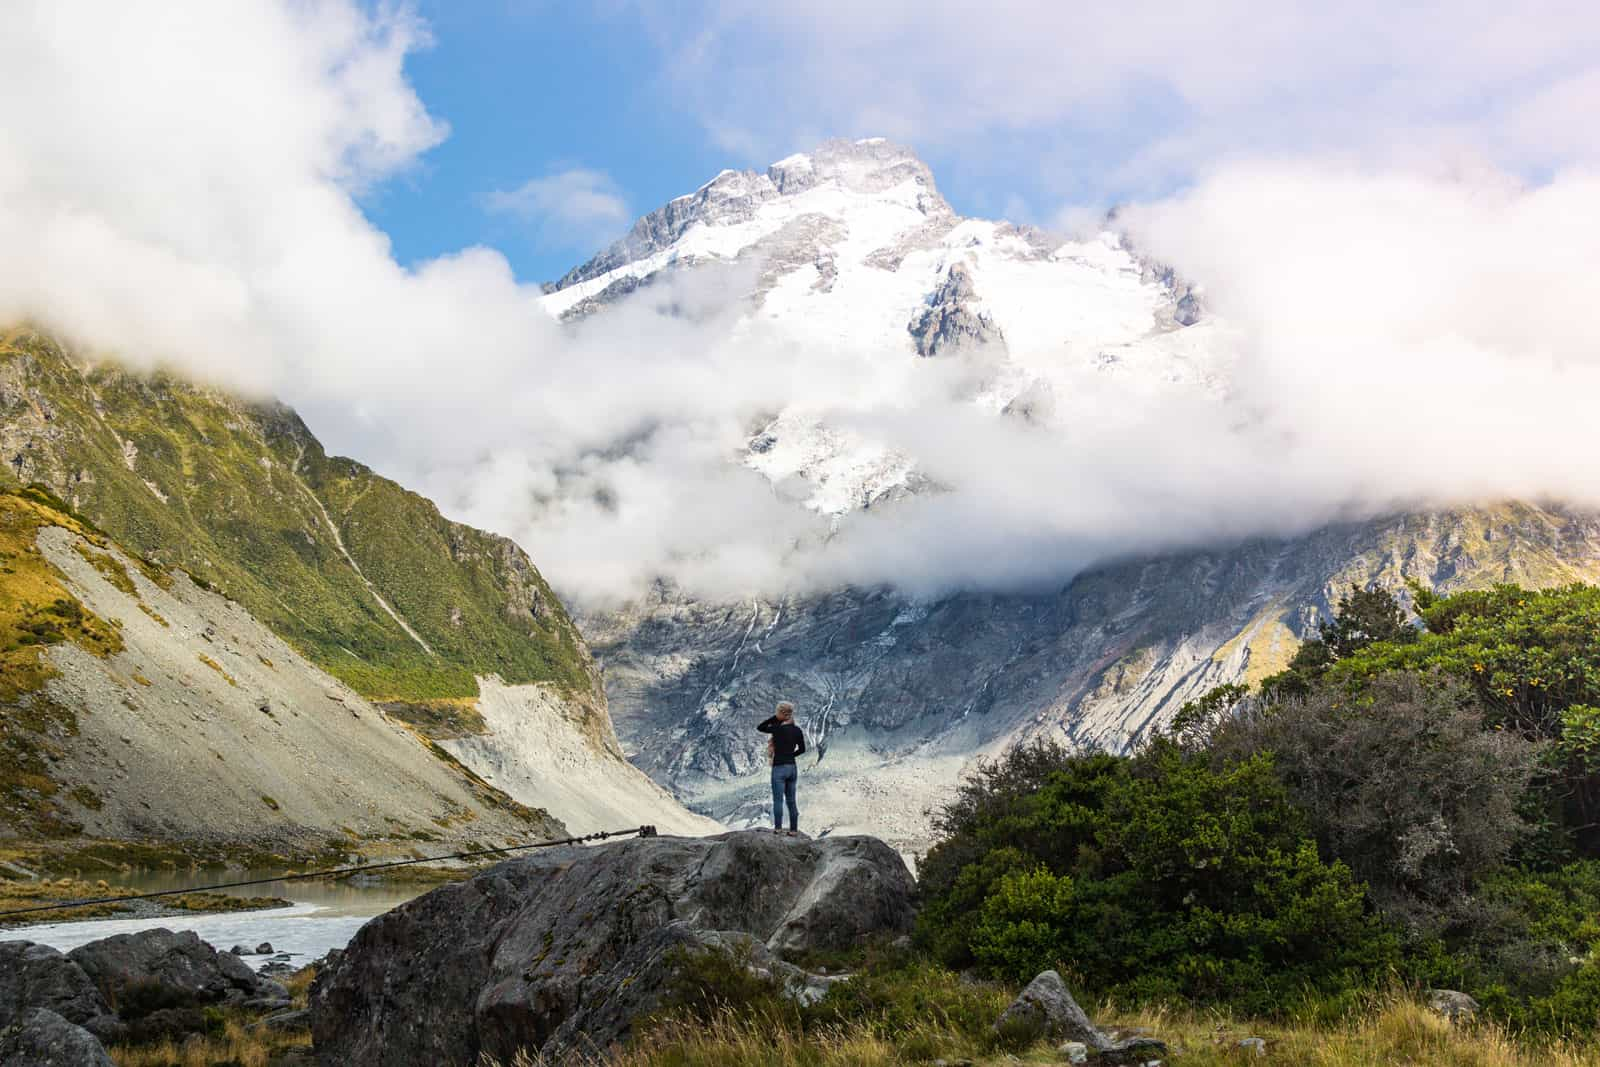 Hooker Valley Track: The Easiest & Most Beautiful Hike in Mount Cook NP (New Zealand)